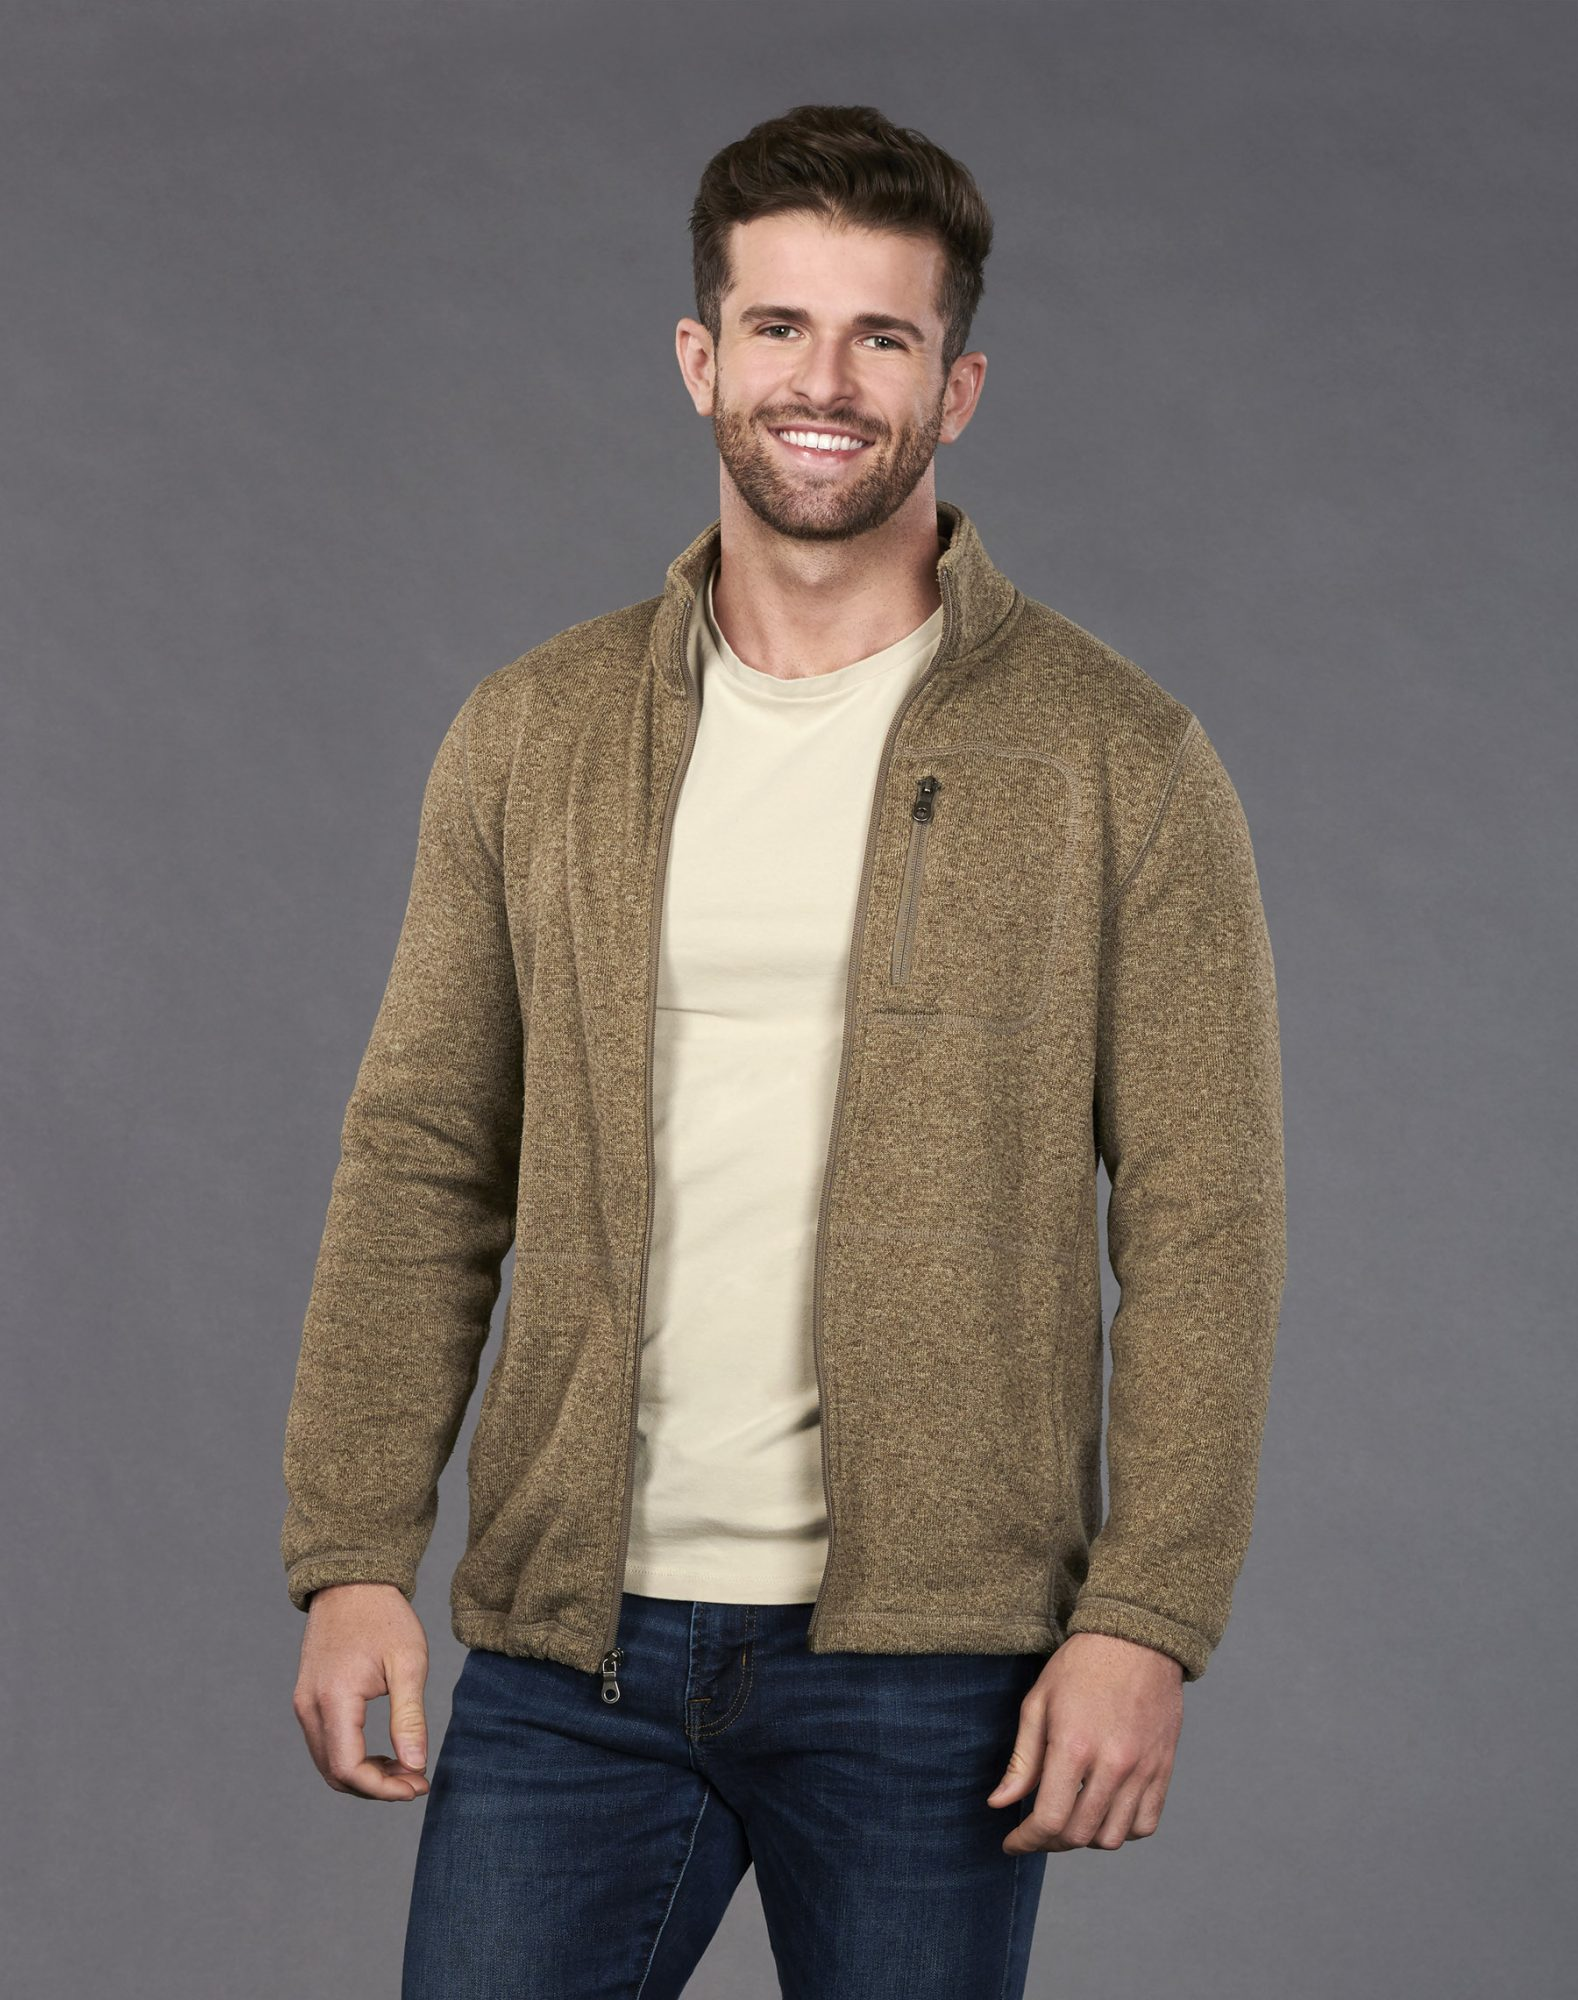 Jed Wyatt The Bachelorette Hannah Brown